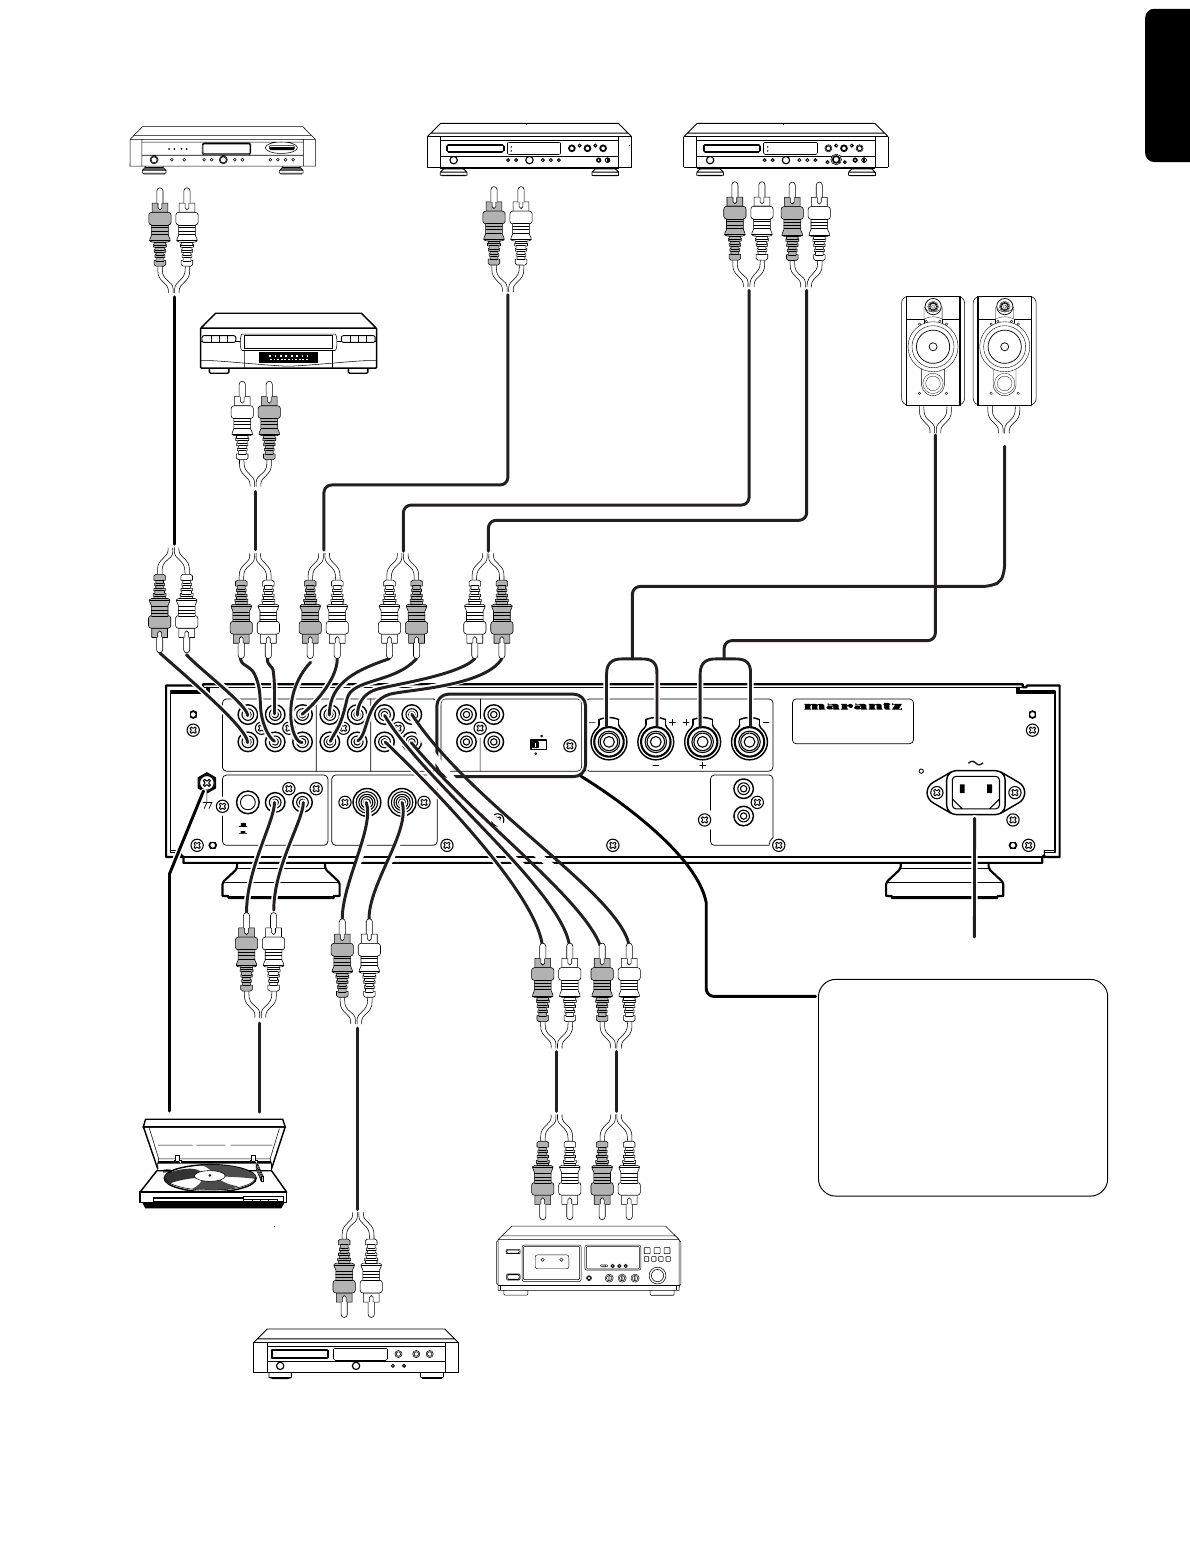 Manual Marantz marantz pm17 MK2 (page 5 of 15) (English)